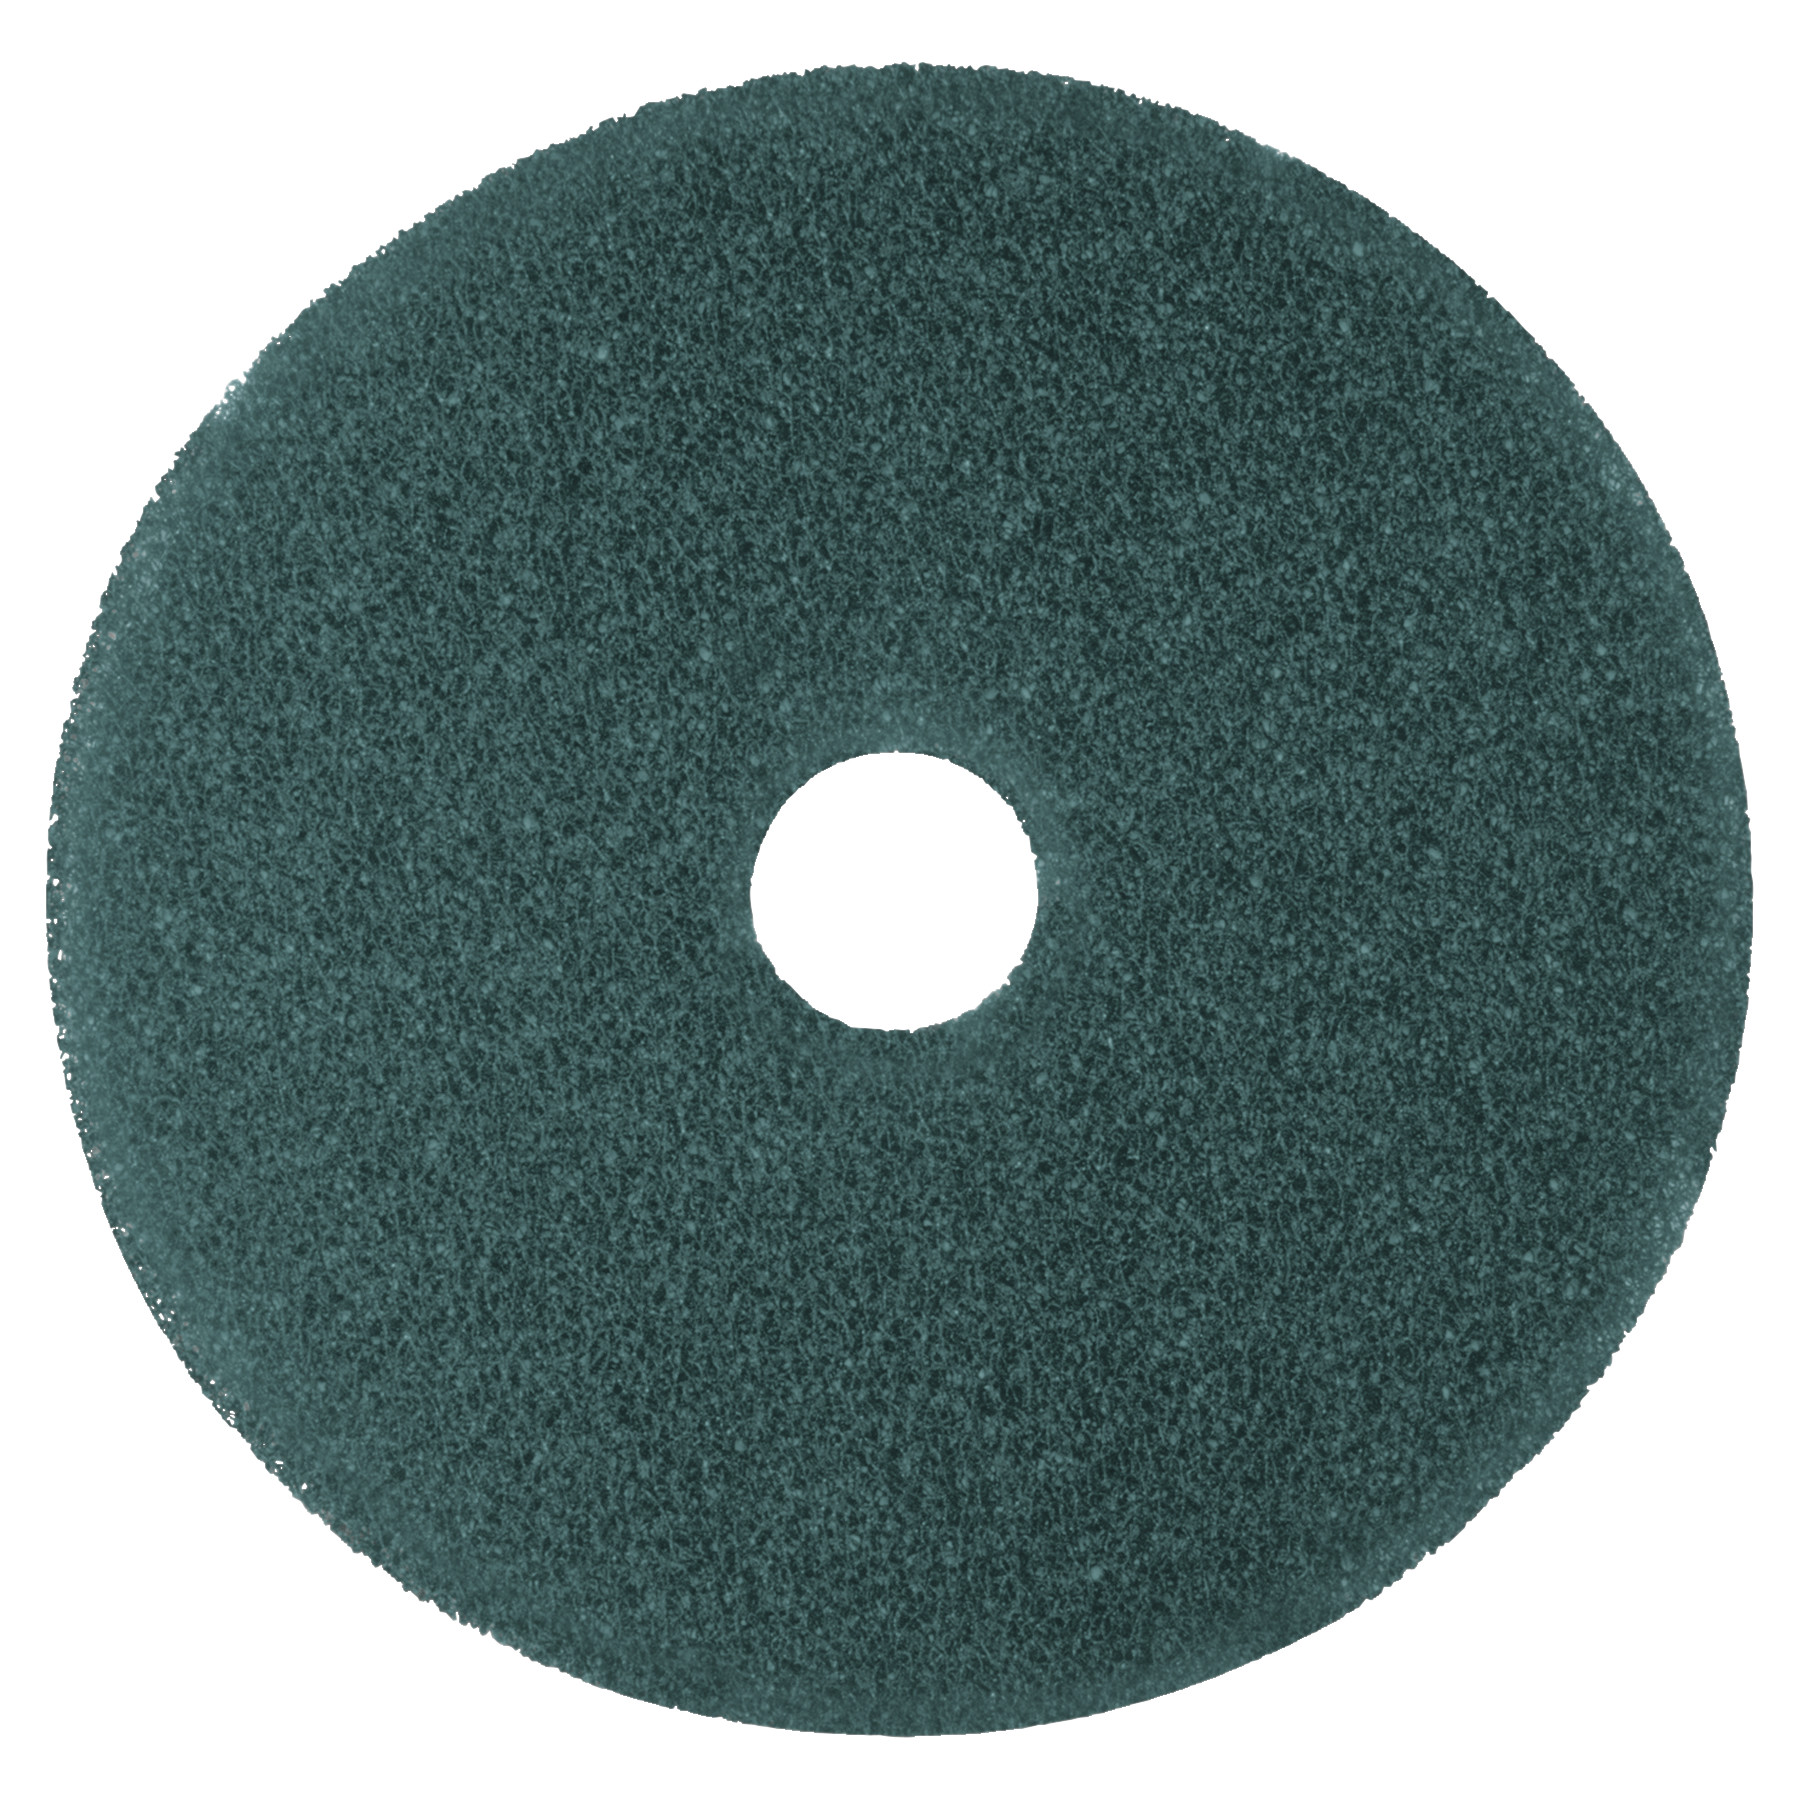 3M 14-Inch Low-Speed High Productivity Floor Pads 5300, Blue, 5 count